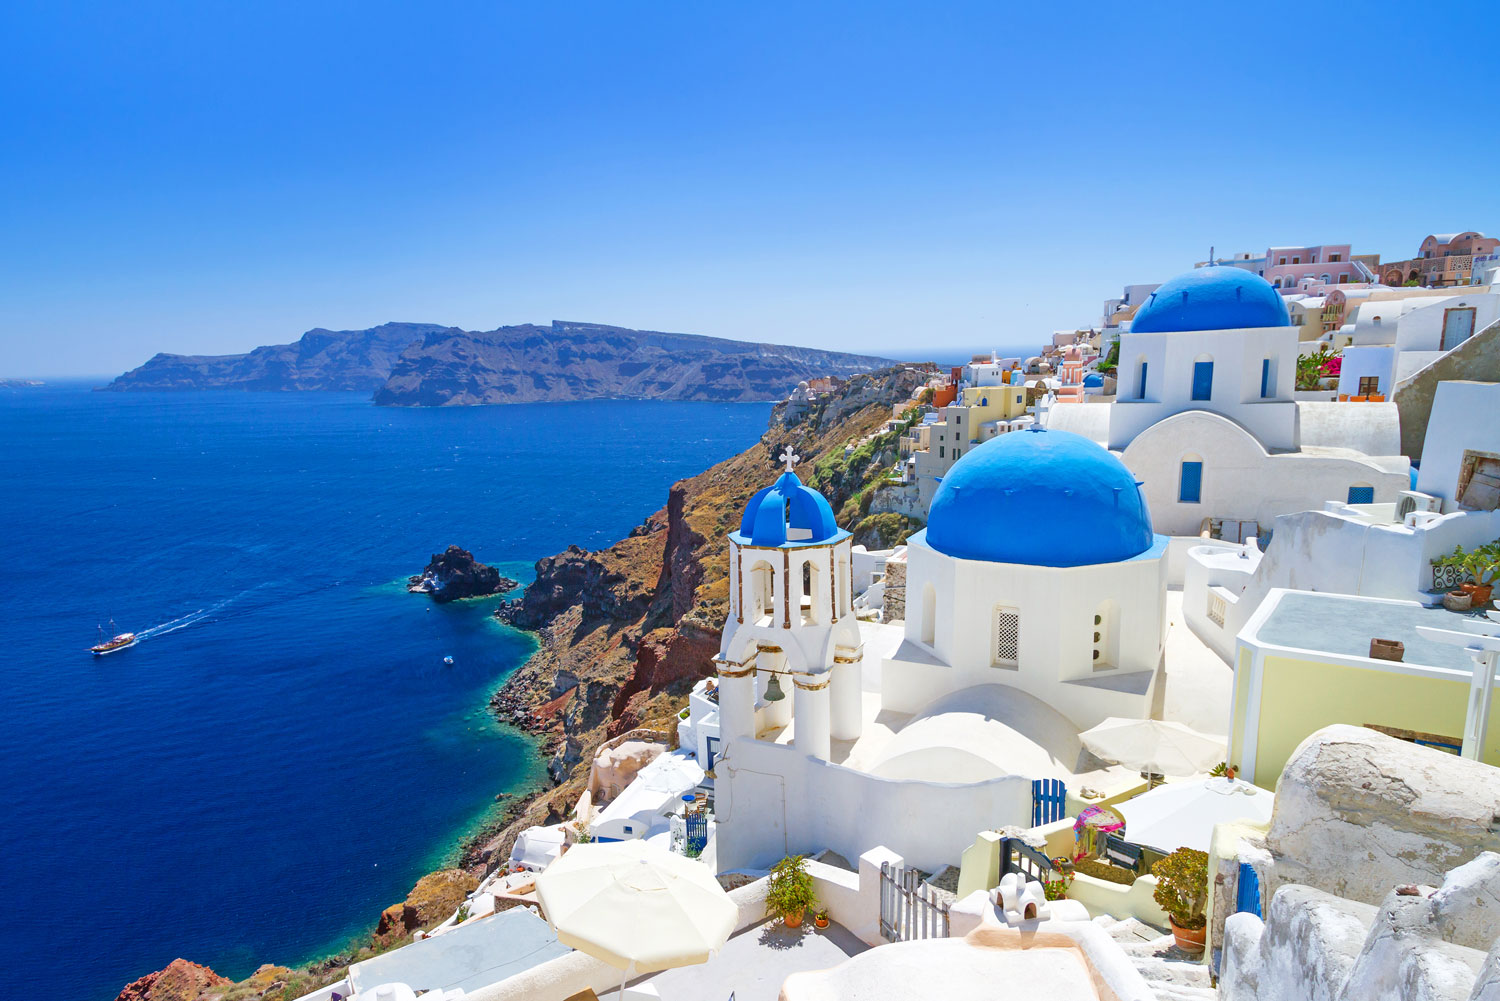 The Greek Islands - The Greek Islands ignite the imagination and satisfy the soul with a history laced in mythical tales and told through ancient, sun-bleached ruins.